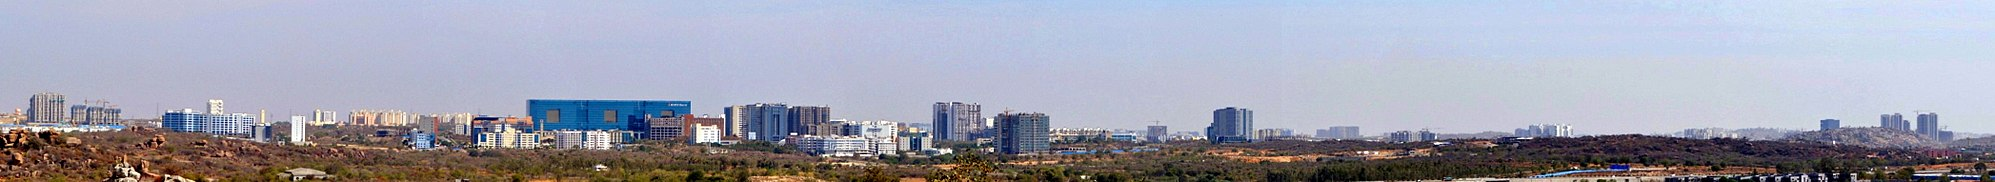 Gachibowli IT suburb